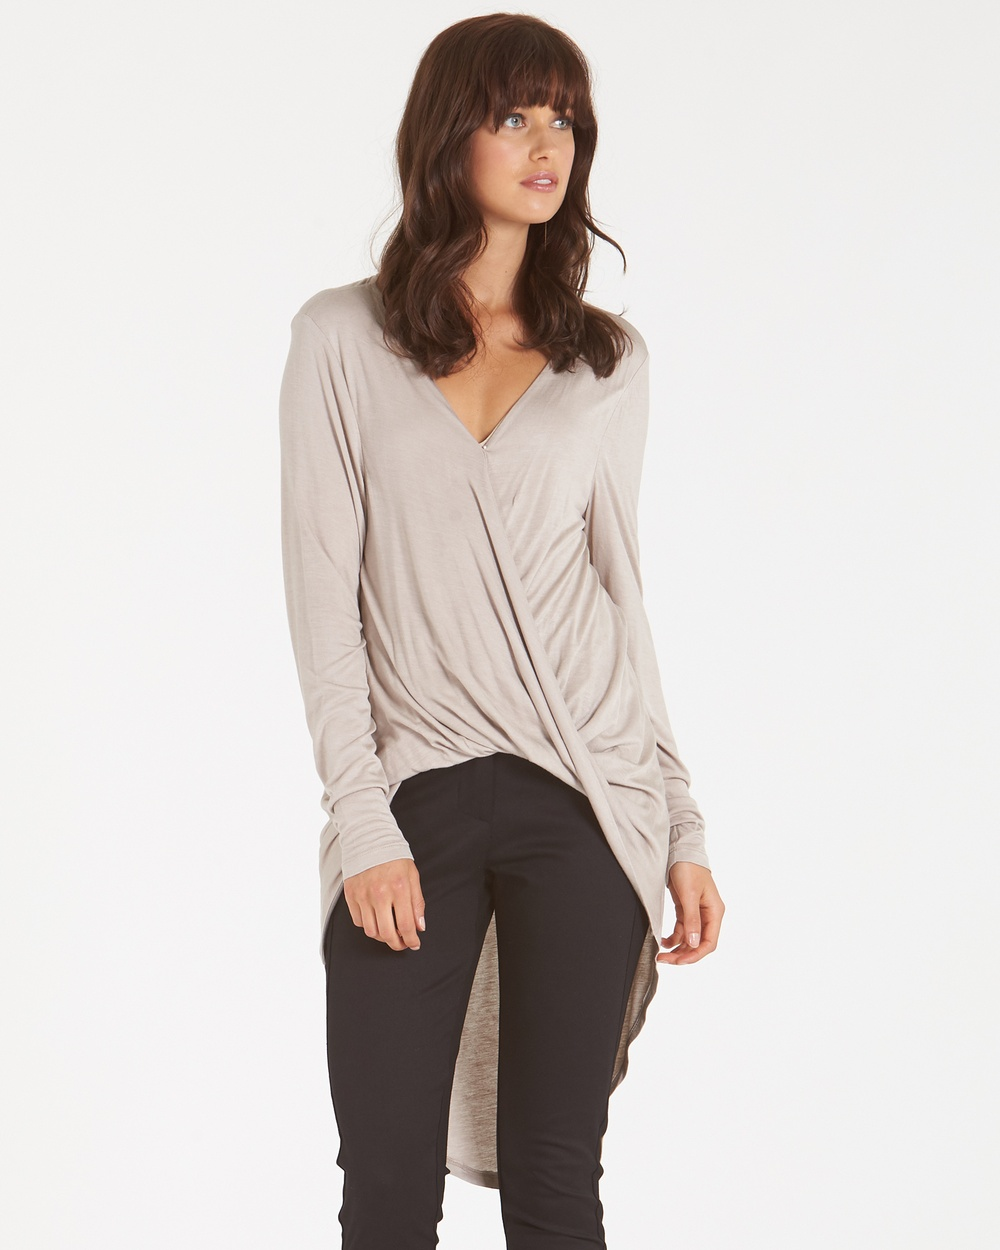 Amelius Shayla Jersey Top Tops Nude Shayla Jersey Top